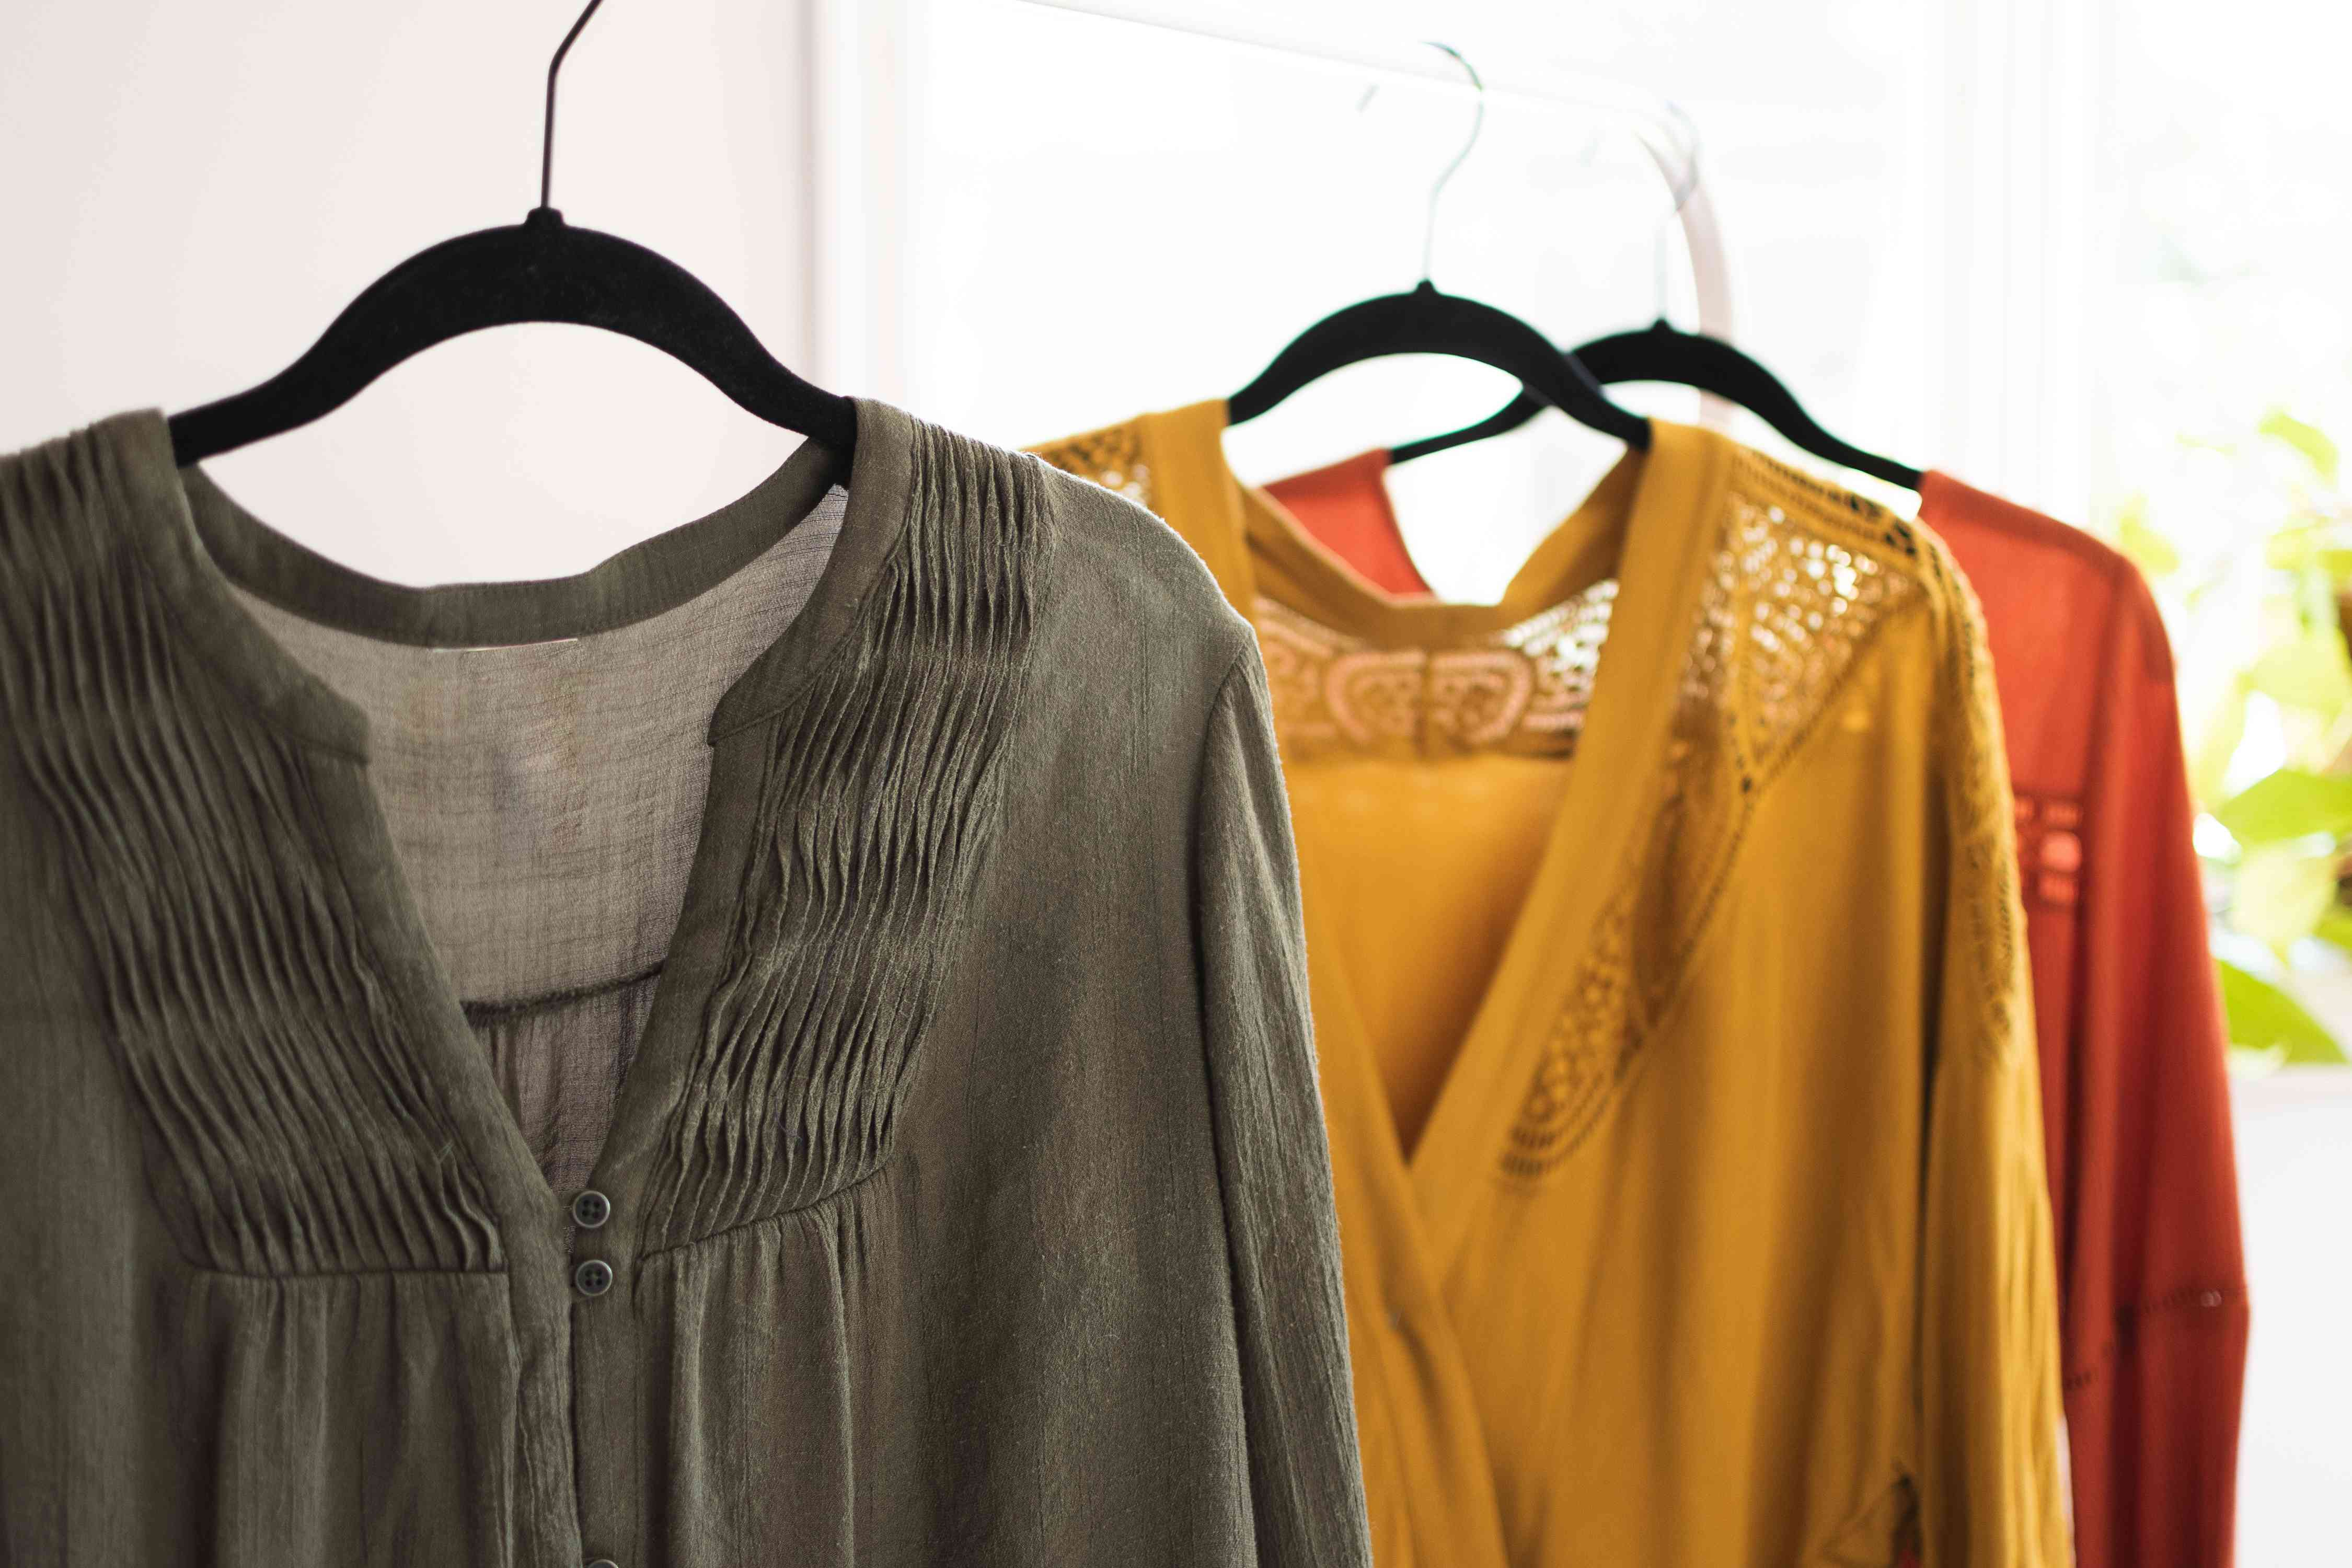 Green, yellow and red rayon blouses hanging on black hangers